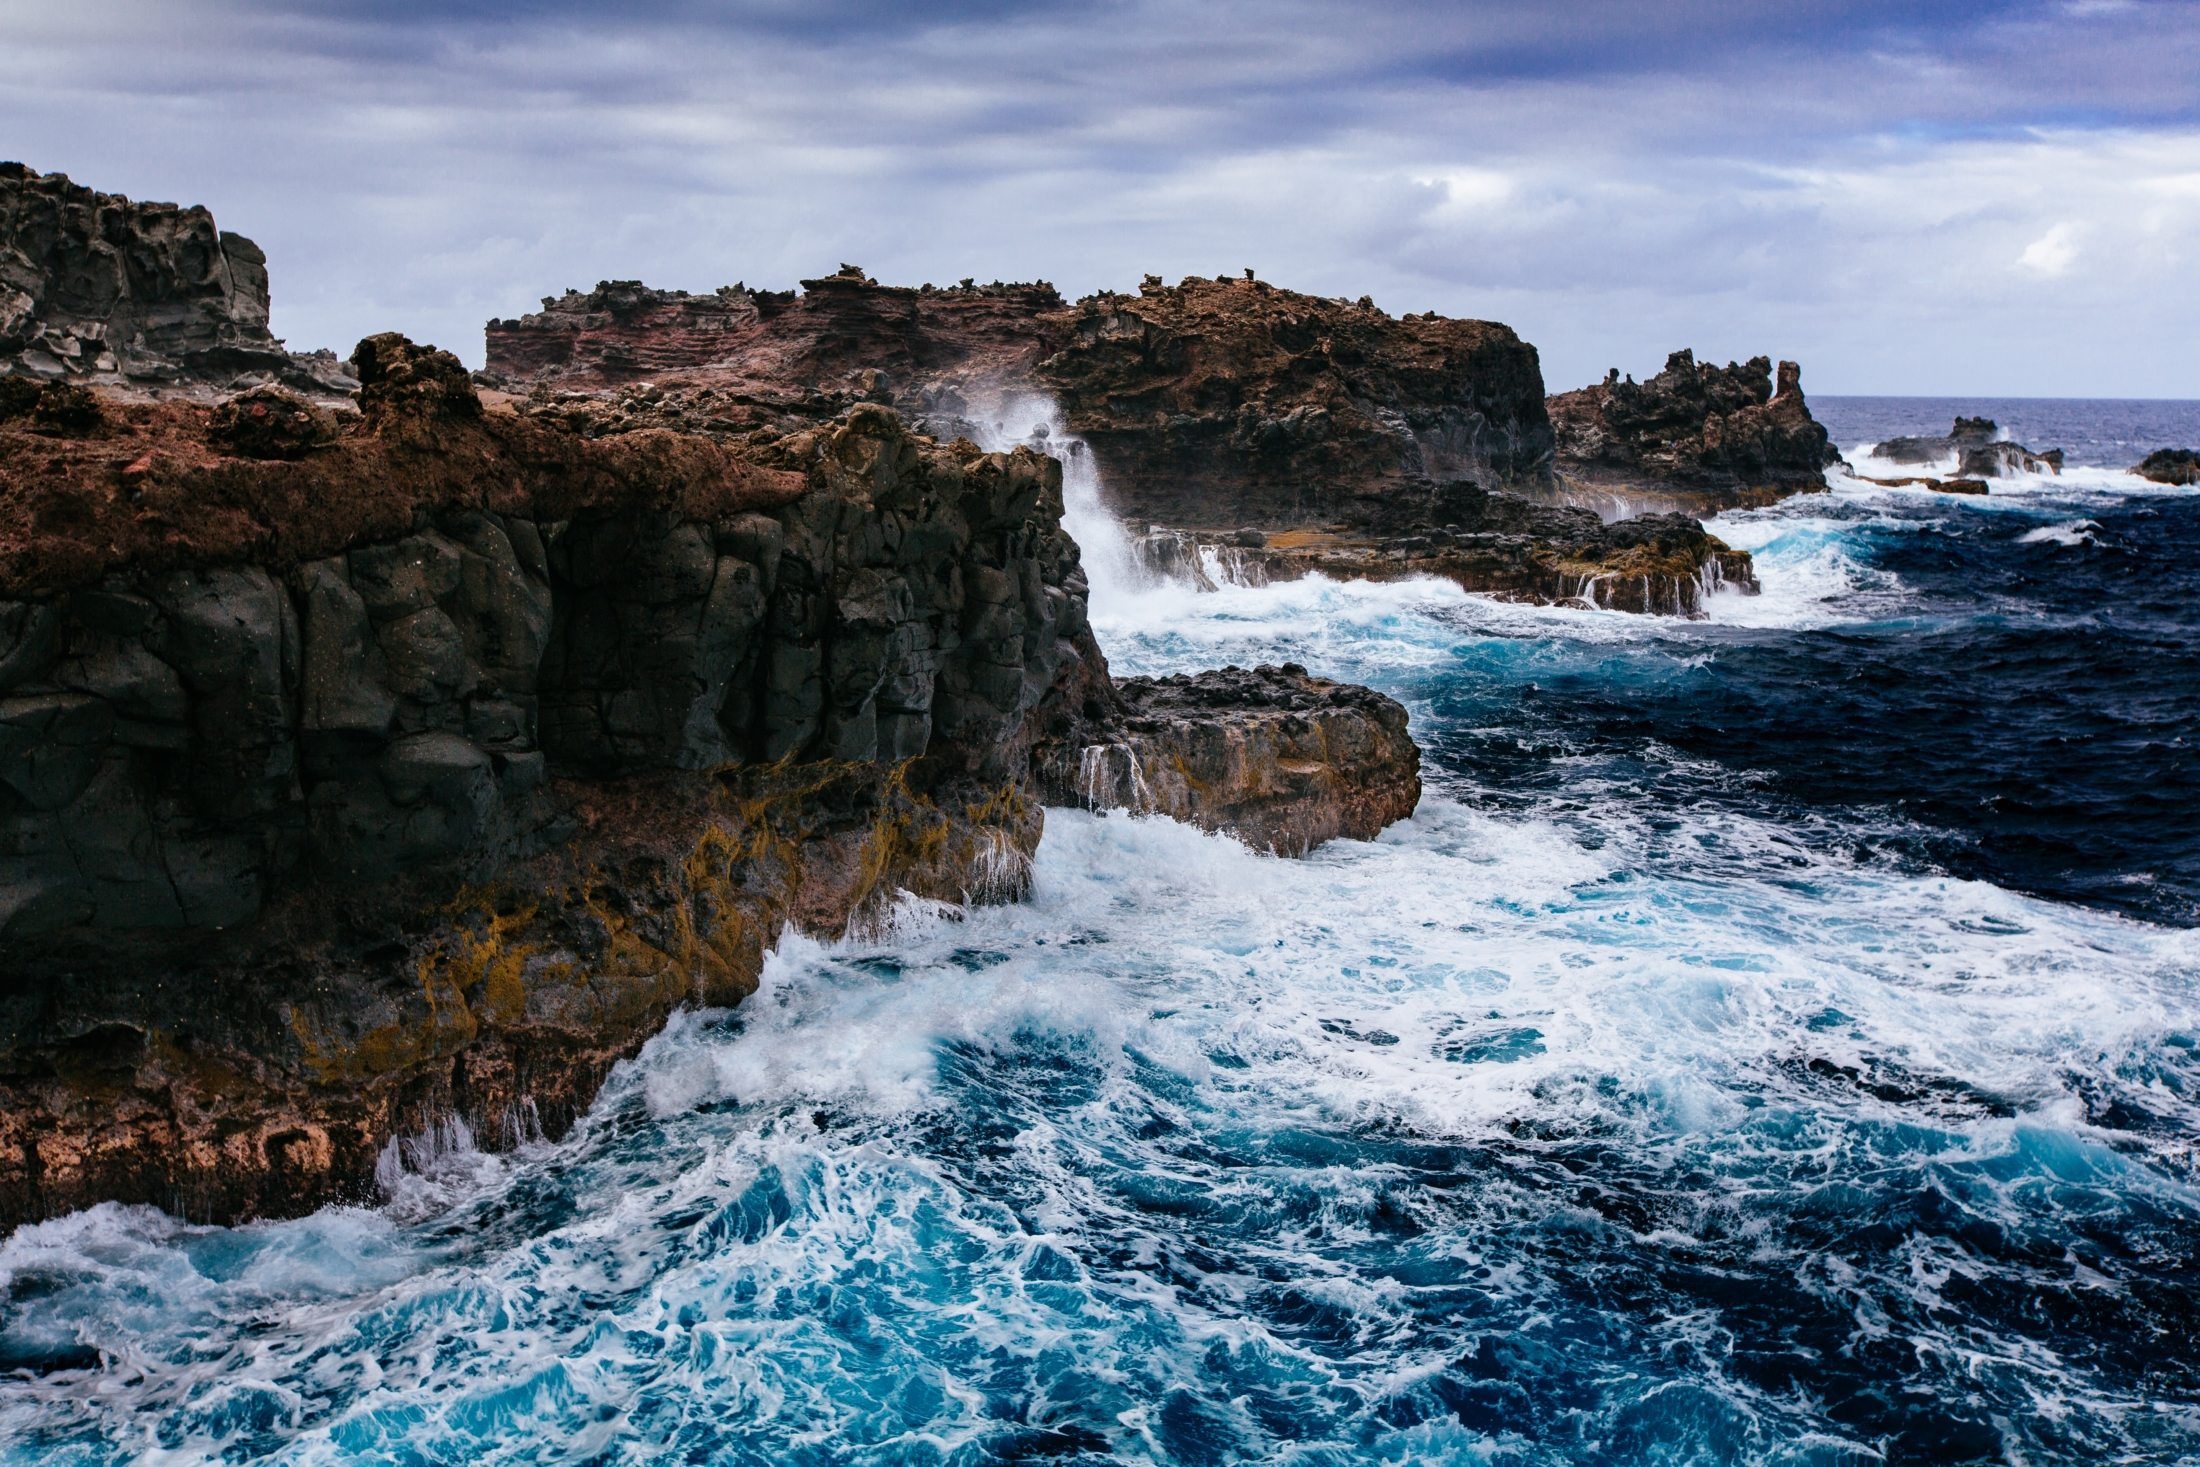 body of water crashing on brown rocks and cliff